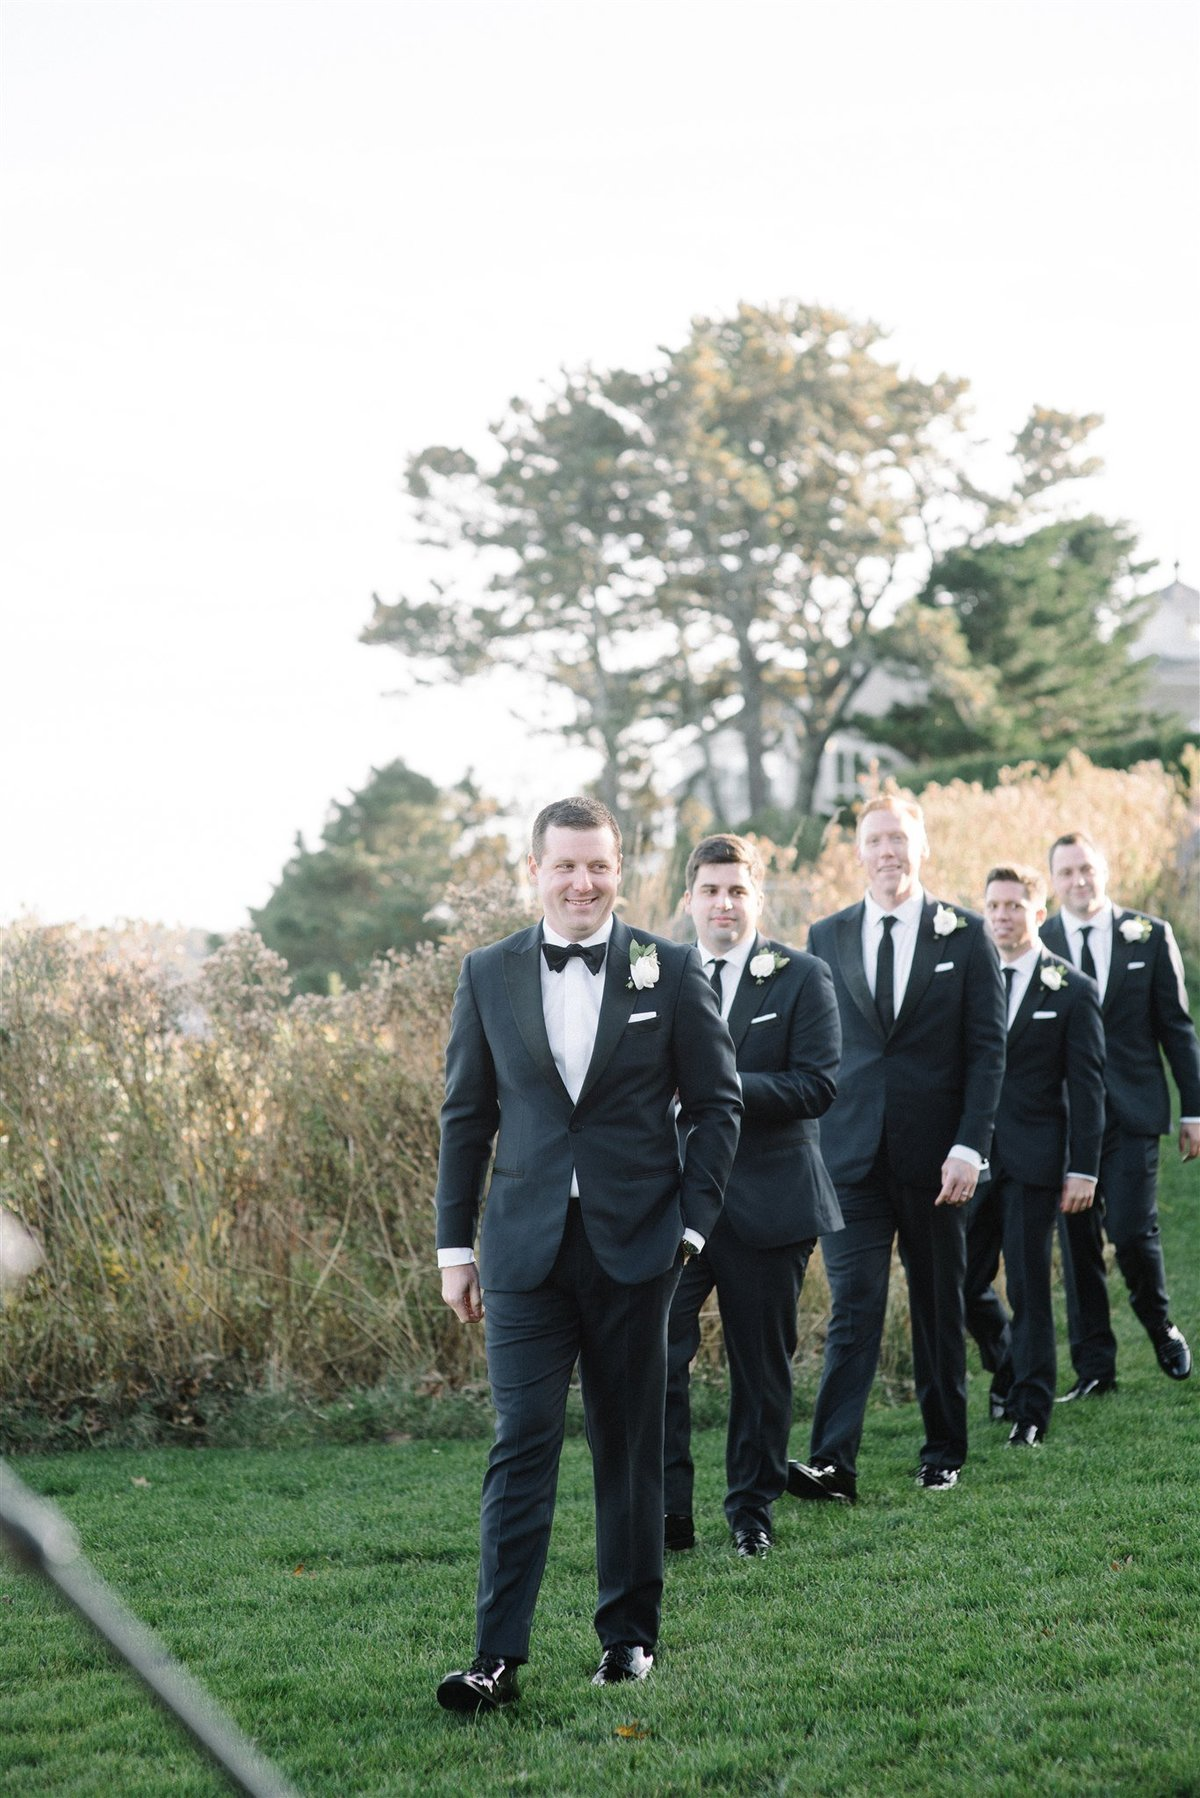 Black tie wedding for a Cape Cod Wedding by luxury Cape Cod wedding planner and designer Always Yours Events